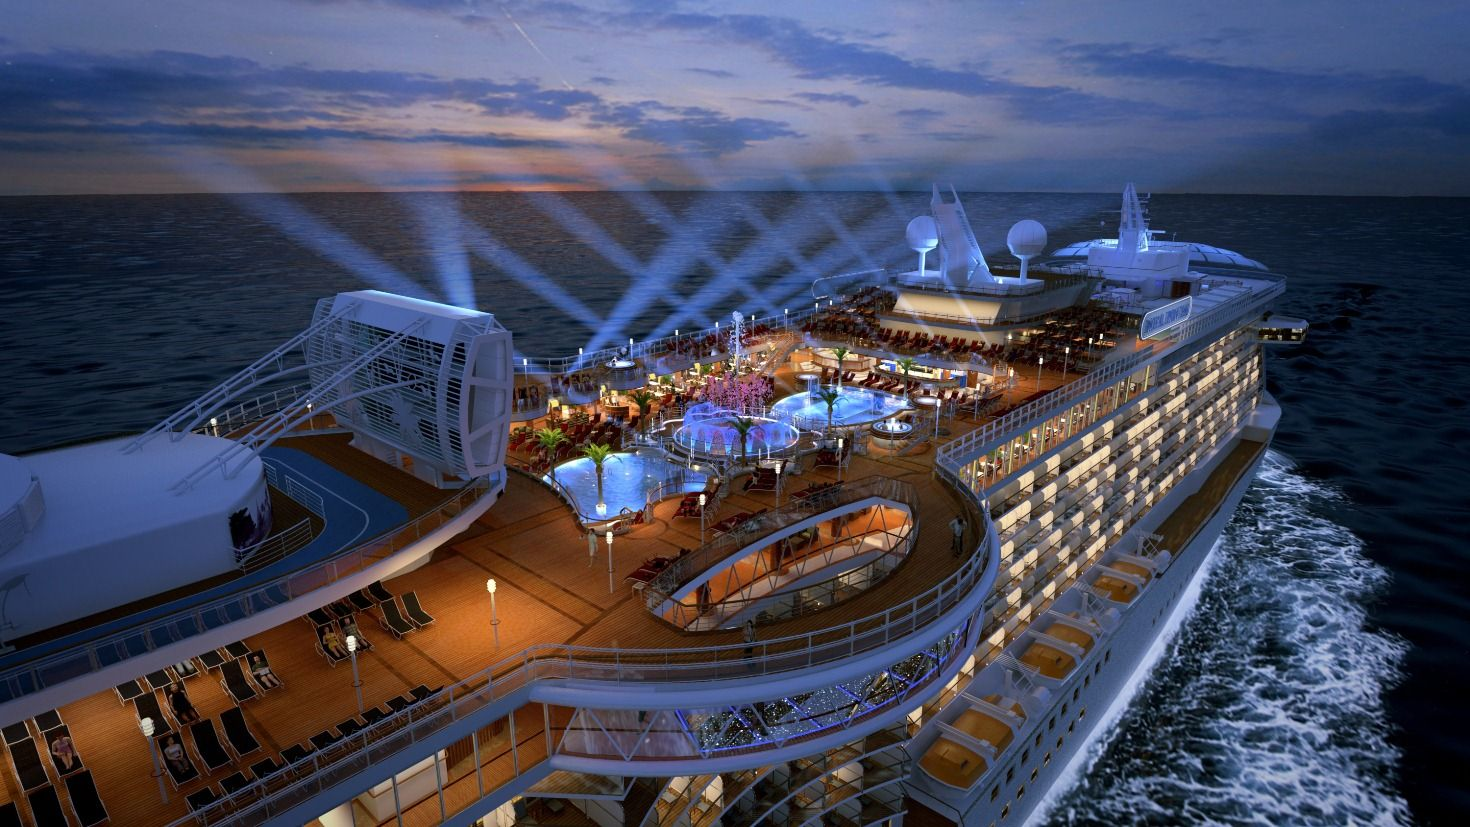 Princess cruises reveals top deck features aboard royal princess princess cruises reveals top deck features aboard royal princess i will be on this ship in december to eastern carribean baanklon Choice Image